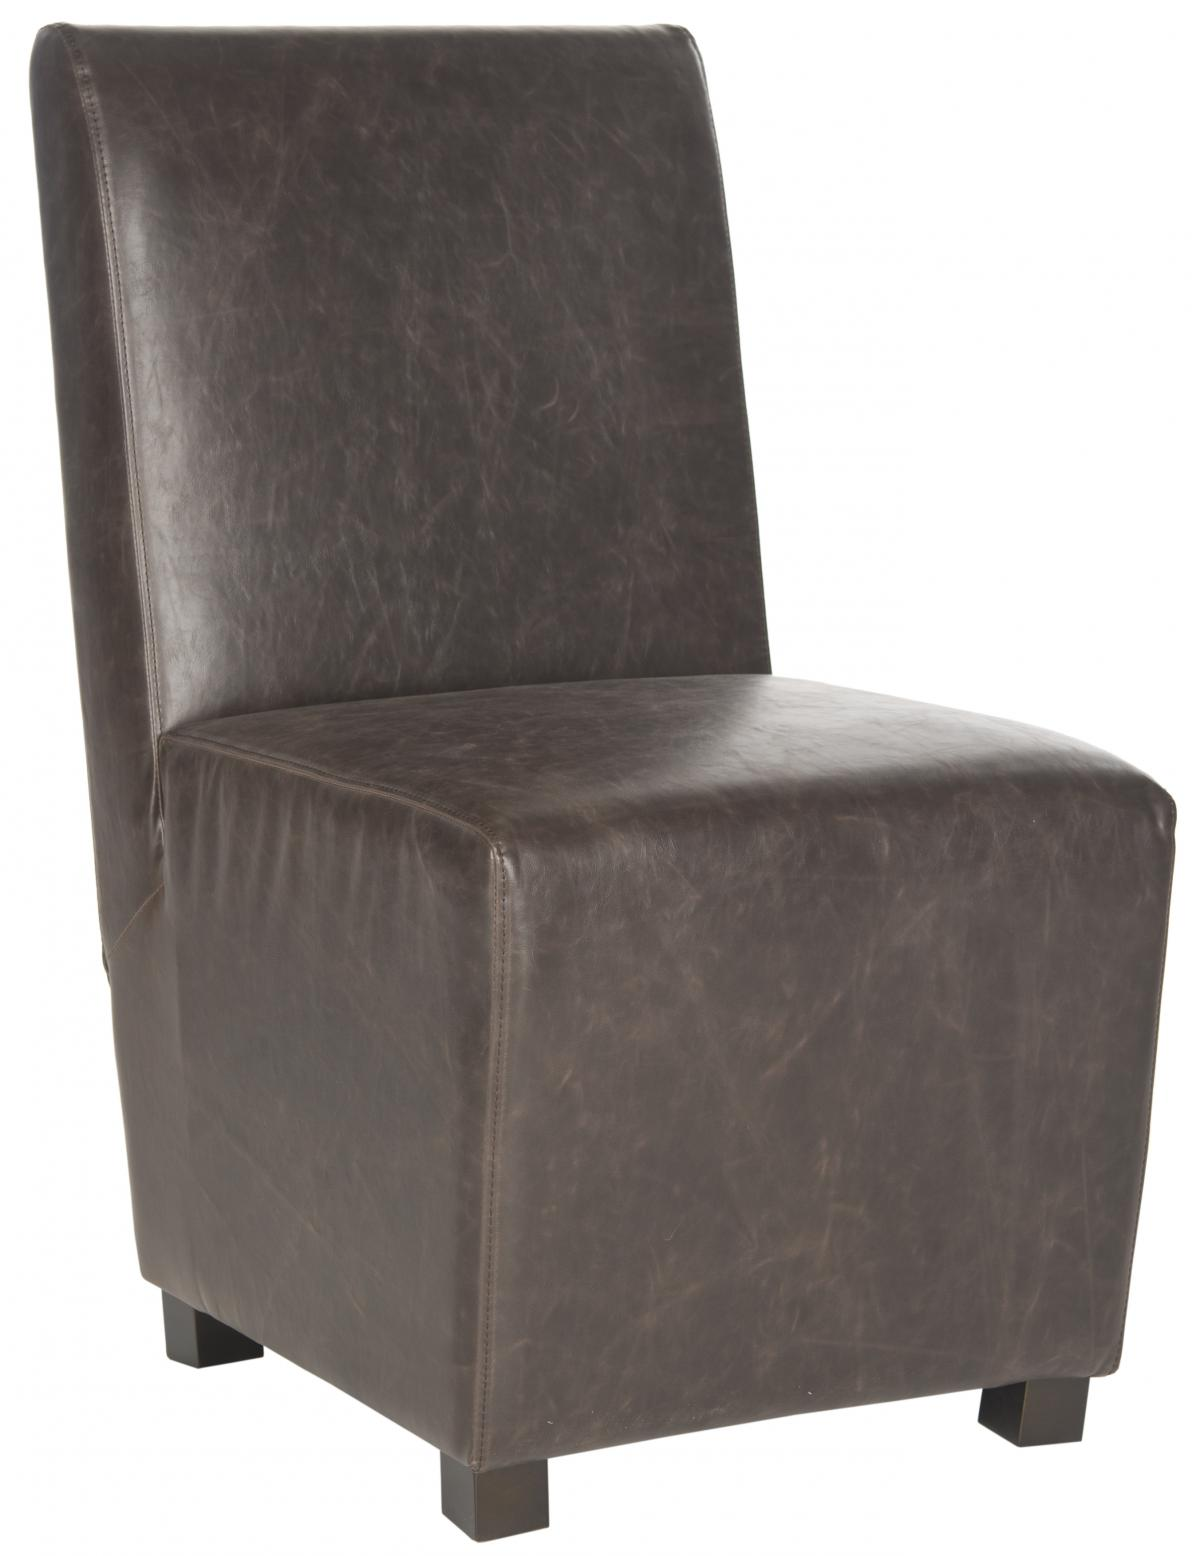 Safavieh - MCR4512B BLEEKER CHAIR - ANTIQUE BROWN (SET)...